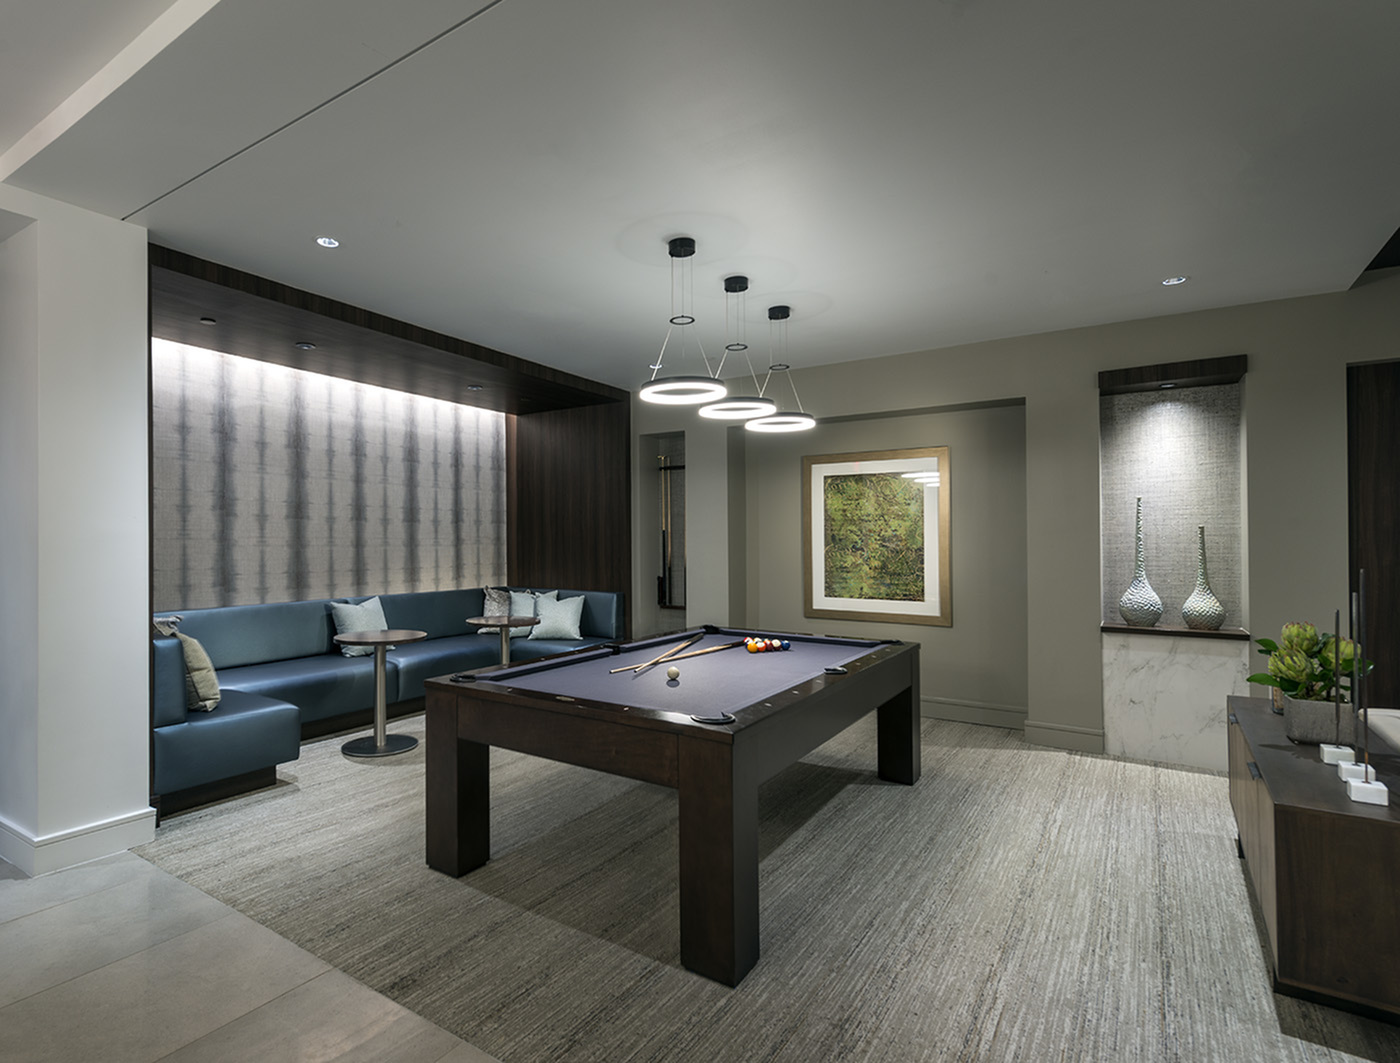 Image of SMART TV lounge with billiards and conversational seating areas for Hanover Perimeter